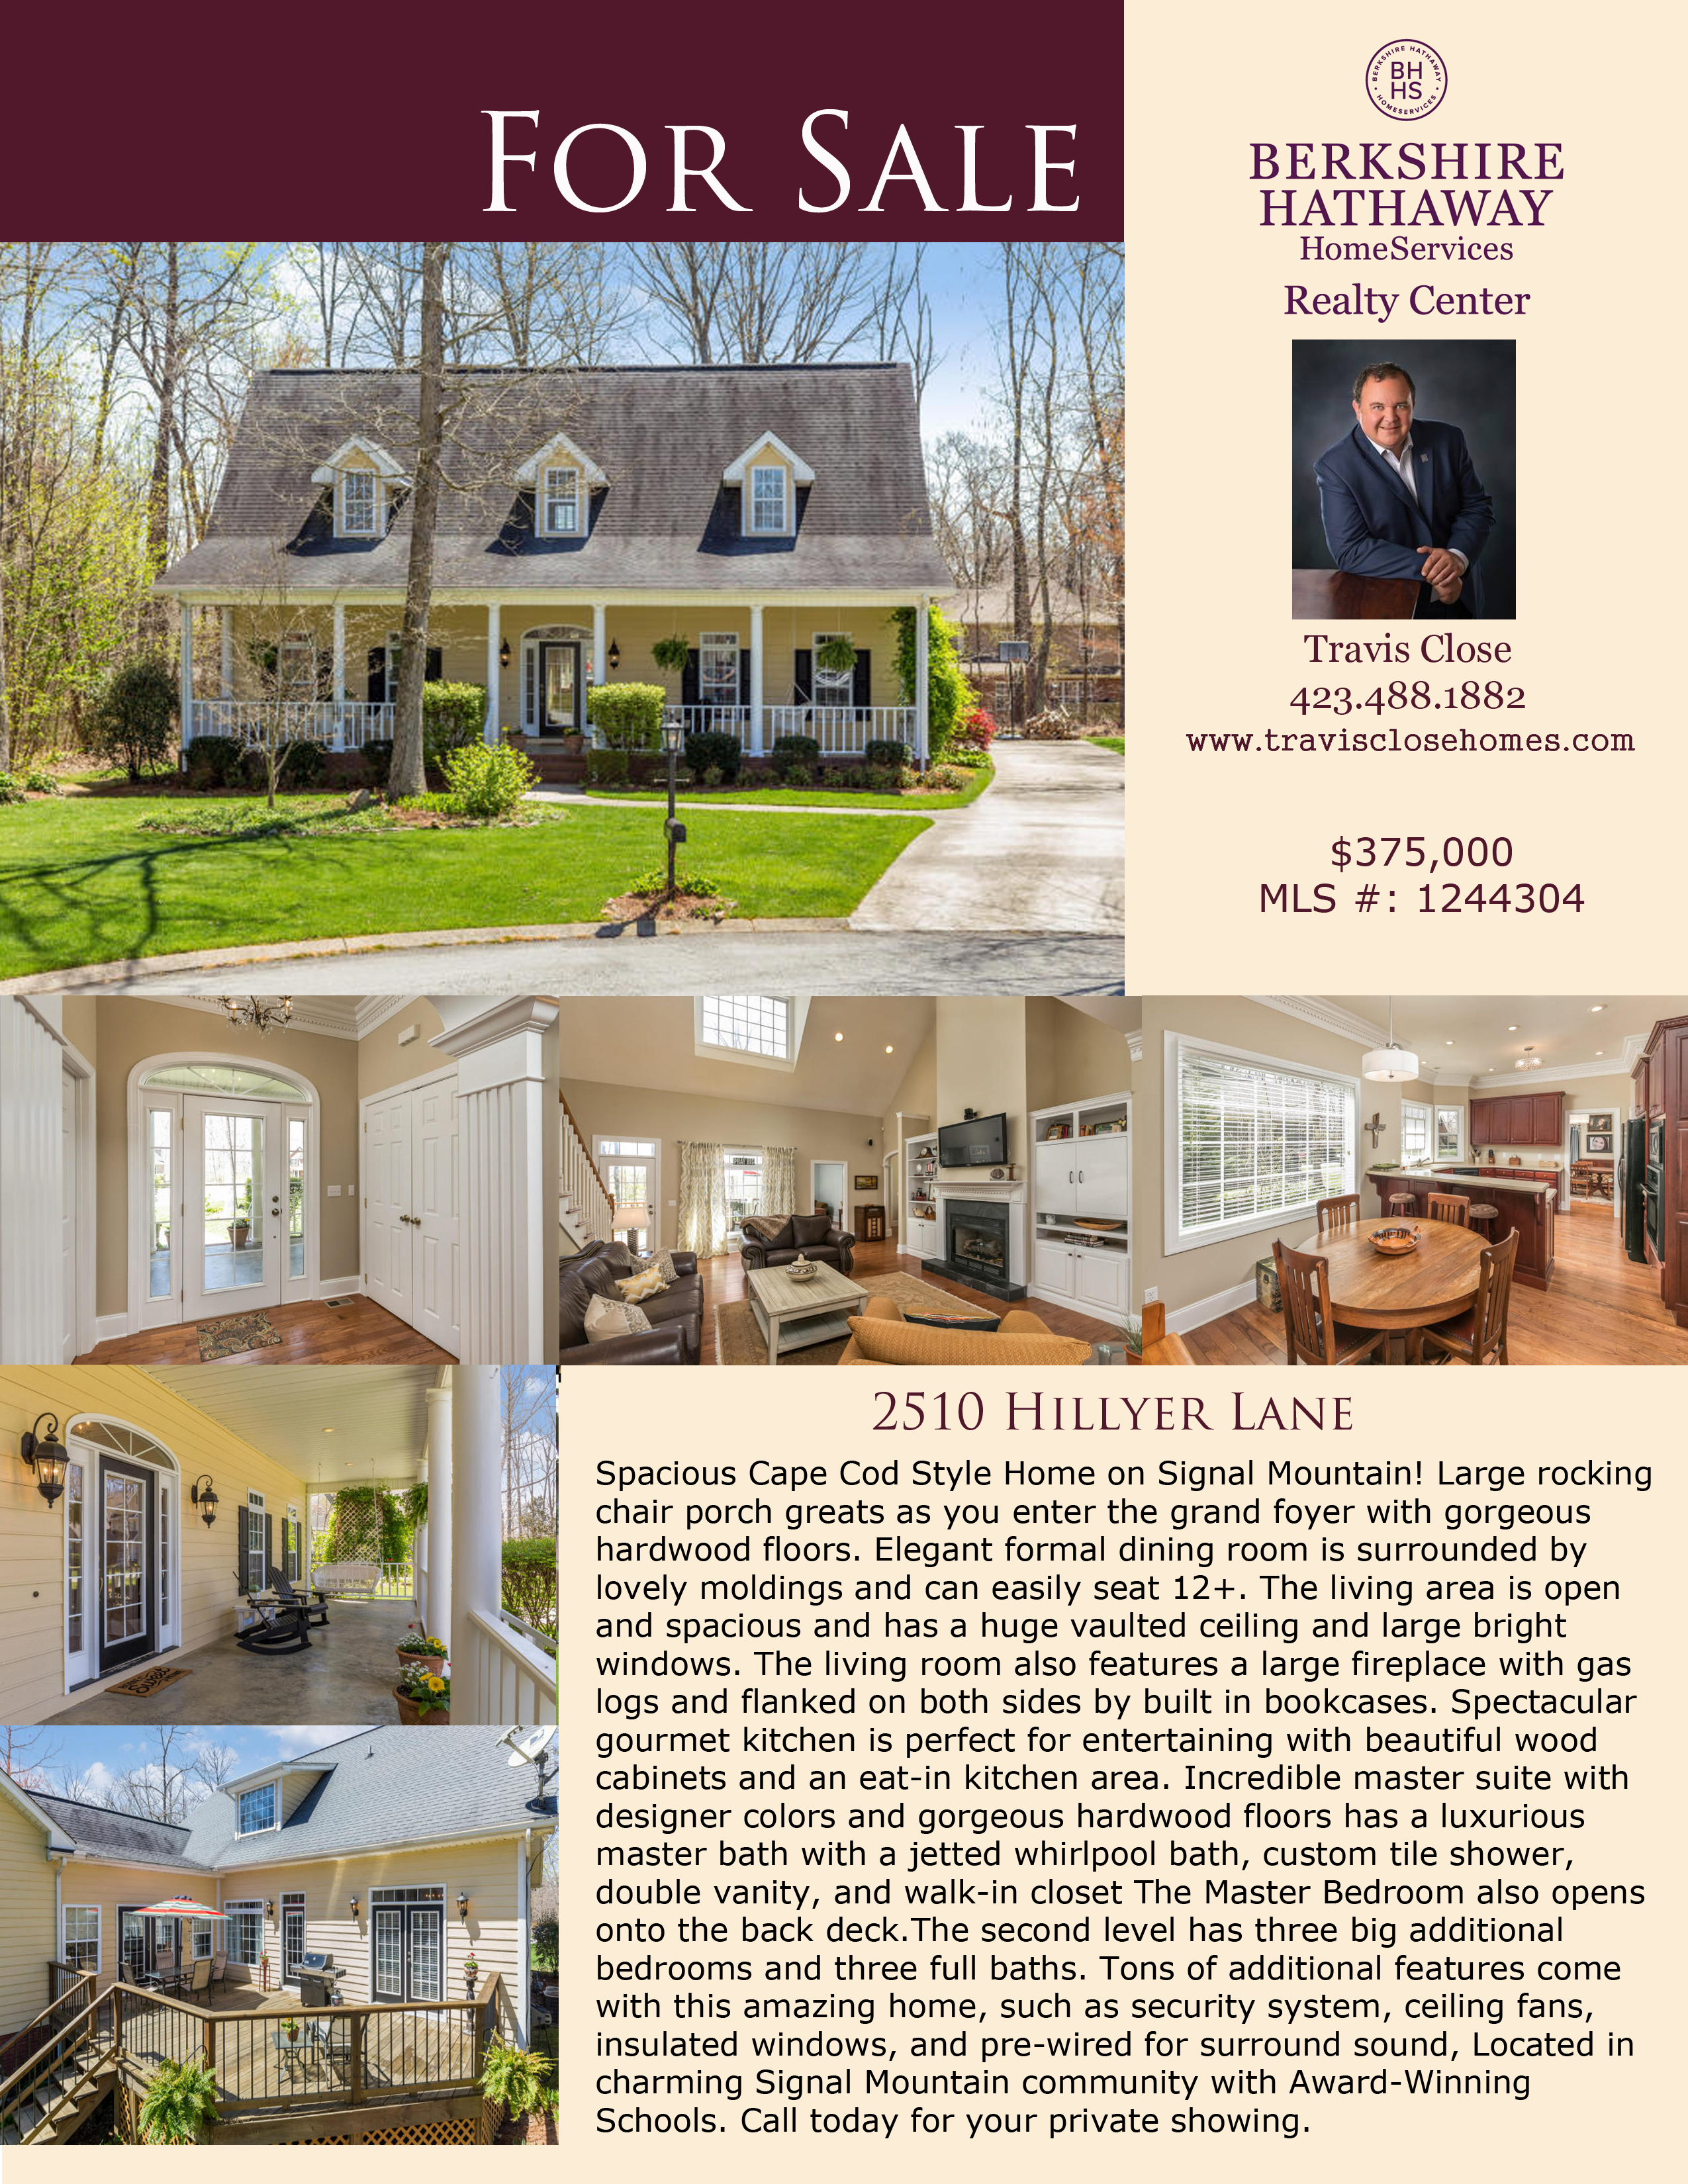 Spacious Cape Cod Style Home On Signal Mountain! Large Rocking Chair Porch  Greats As You Enter The Grand Foyer With Gorgeous Hardwood Floors.